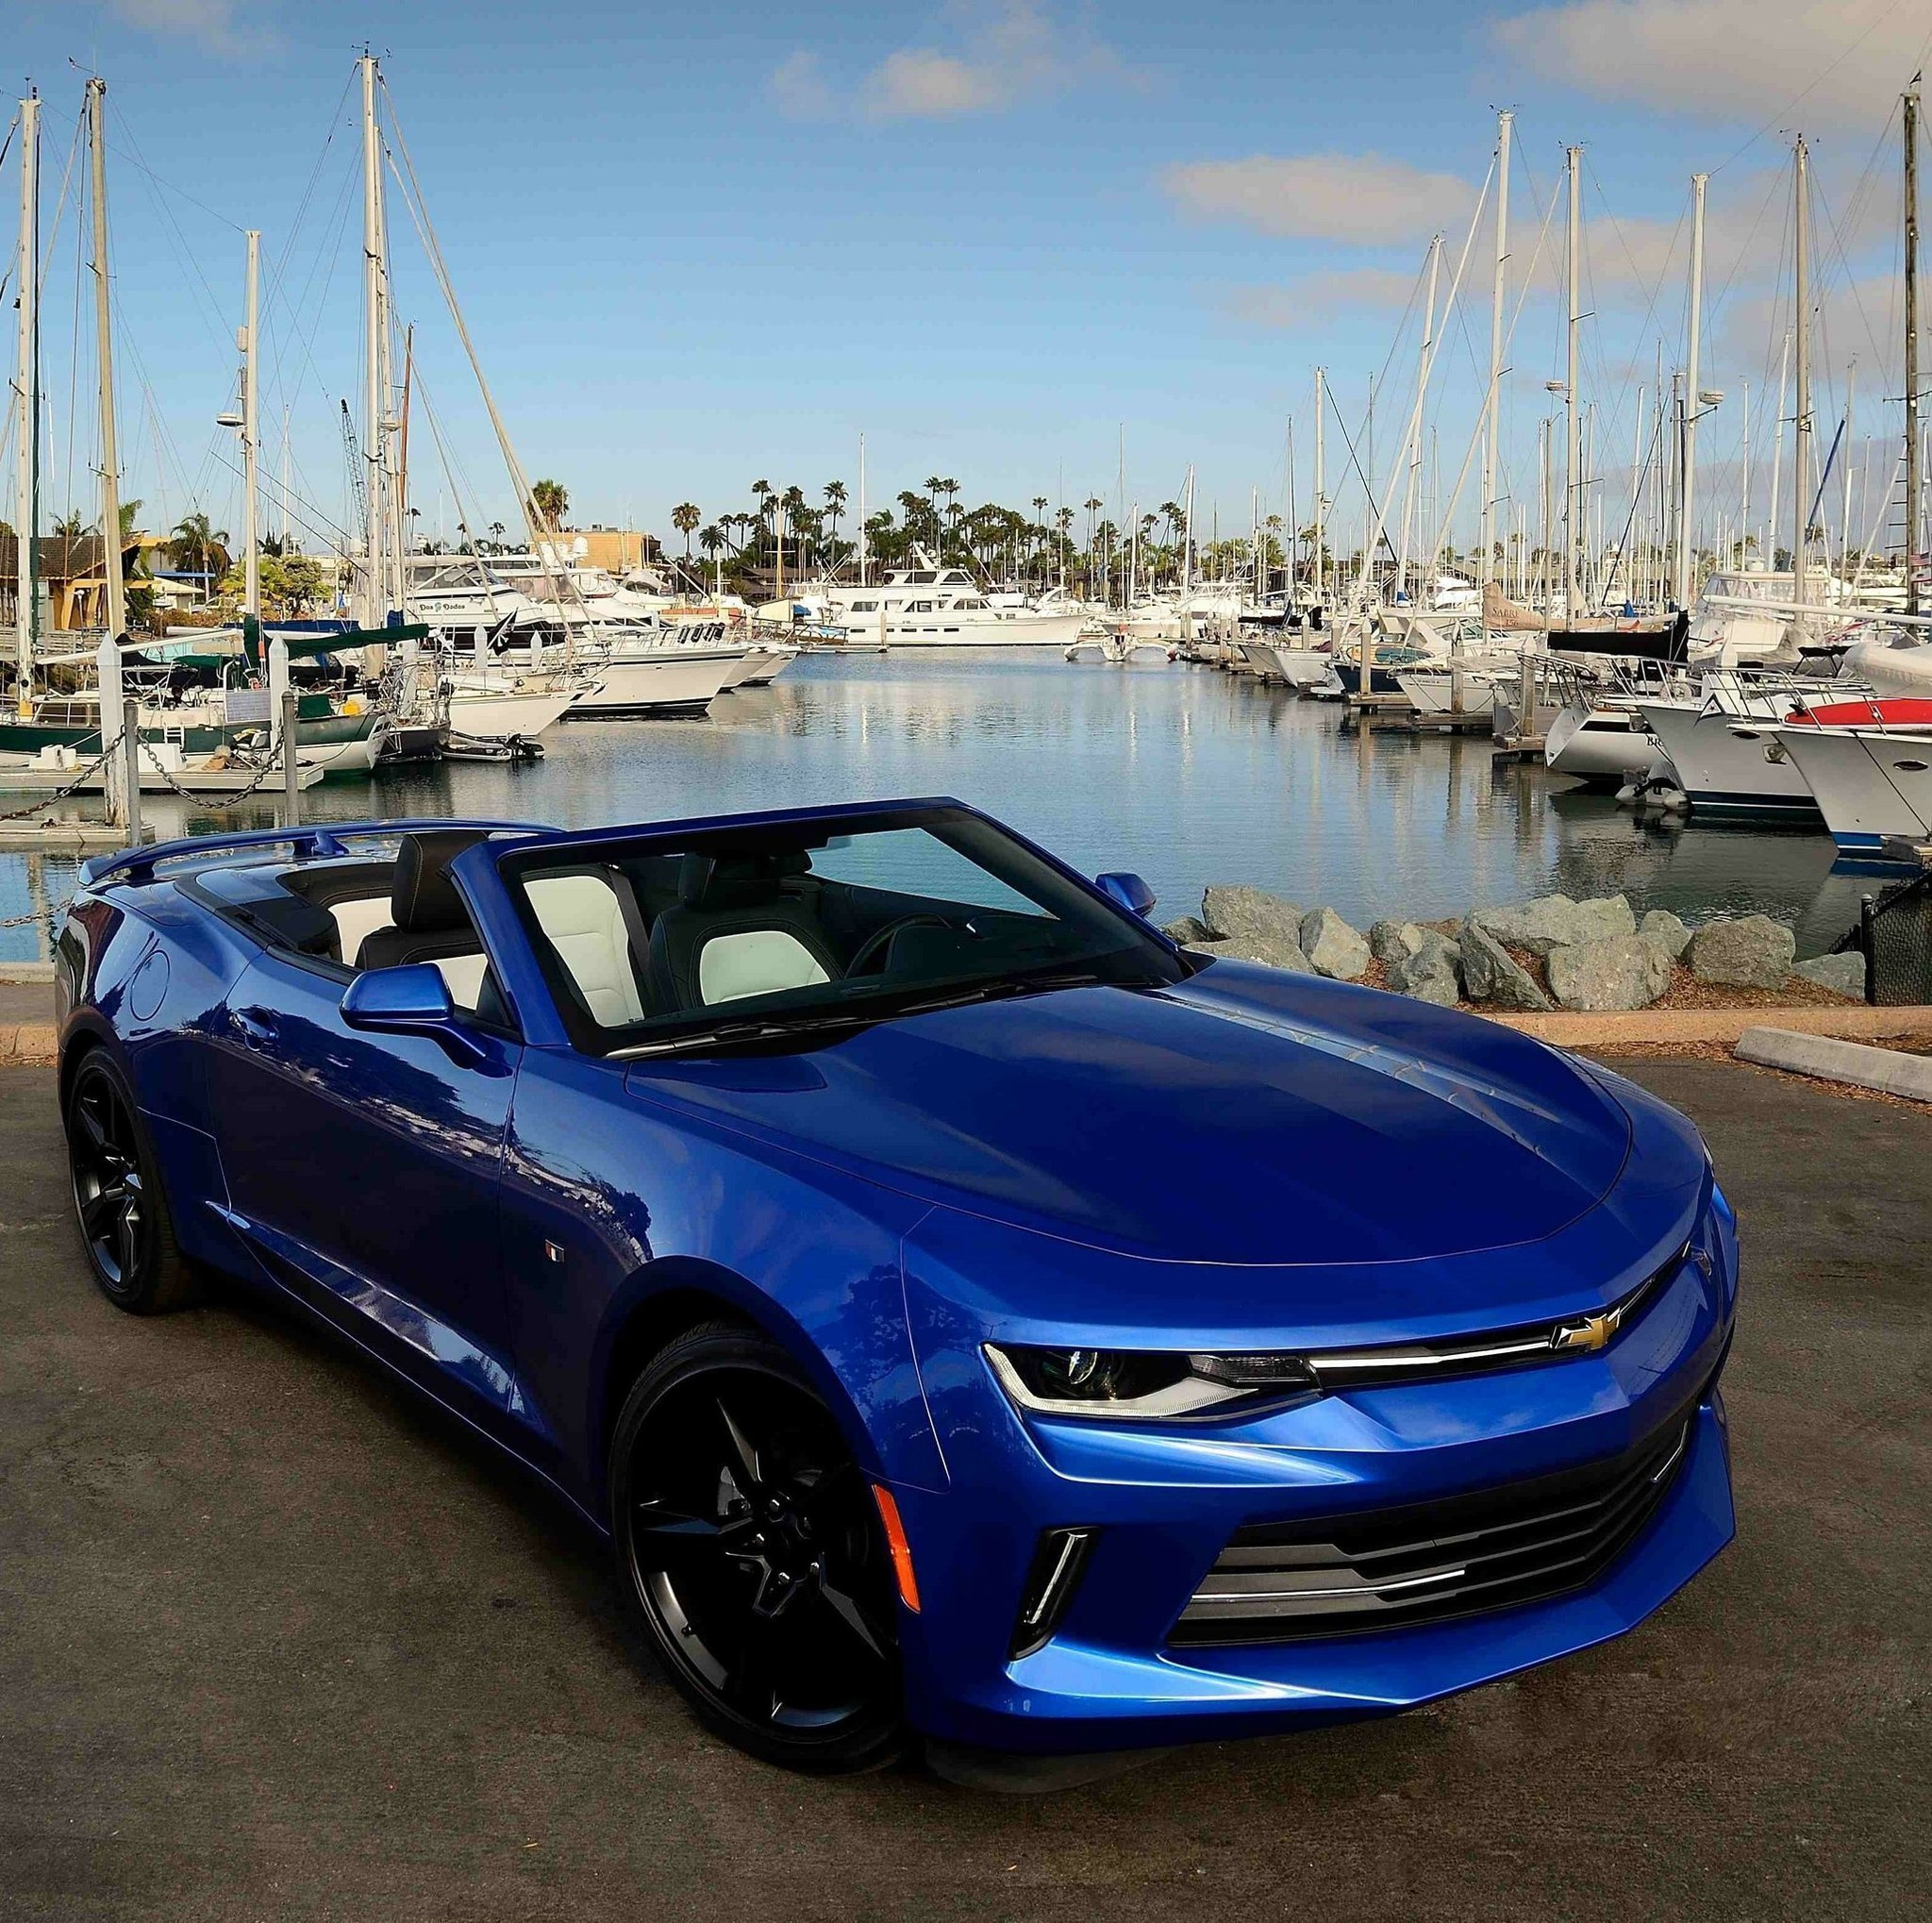 The 2016 Chevrolet Camaro Convertible Is A Dramatic